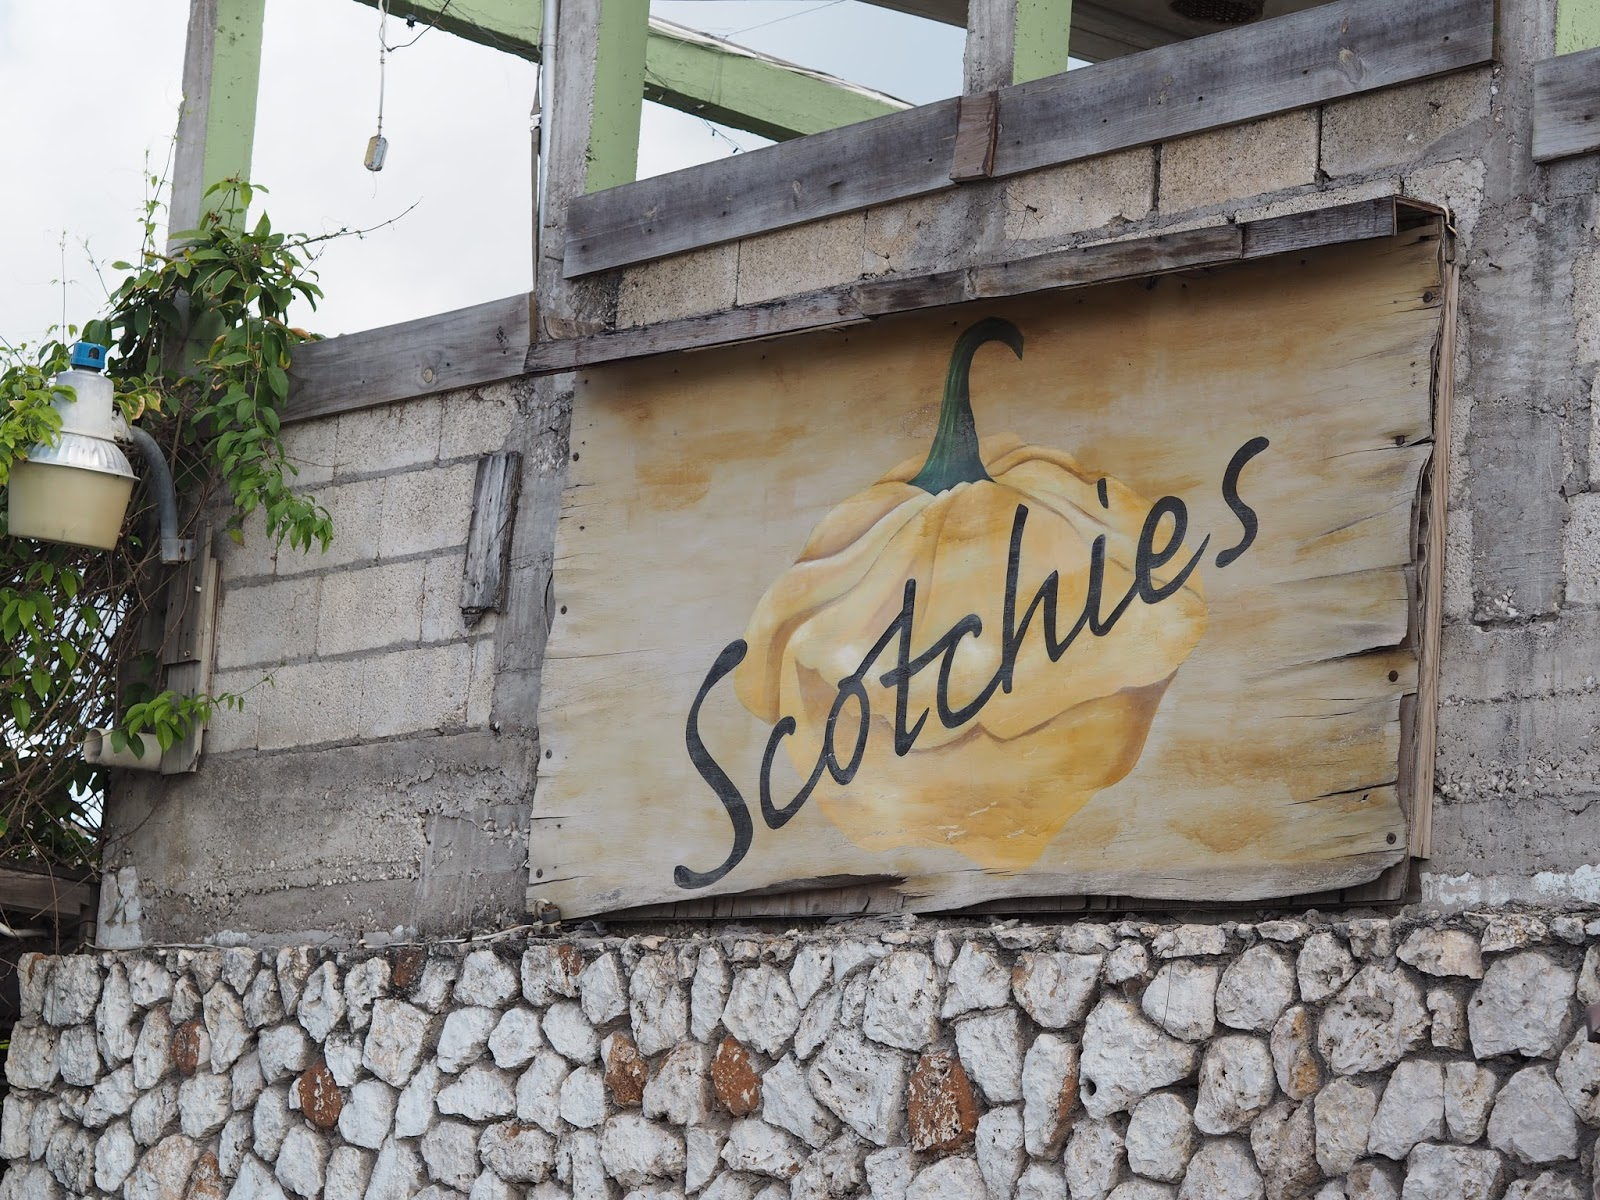 local resturant Scotties, Montego bag, jamaica, www,jadore-fashion.com